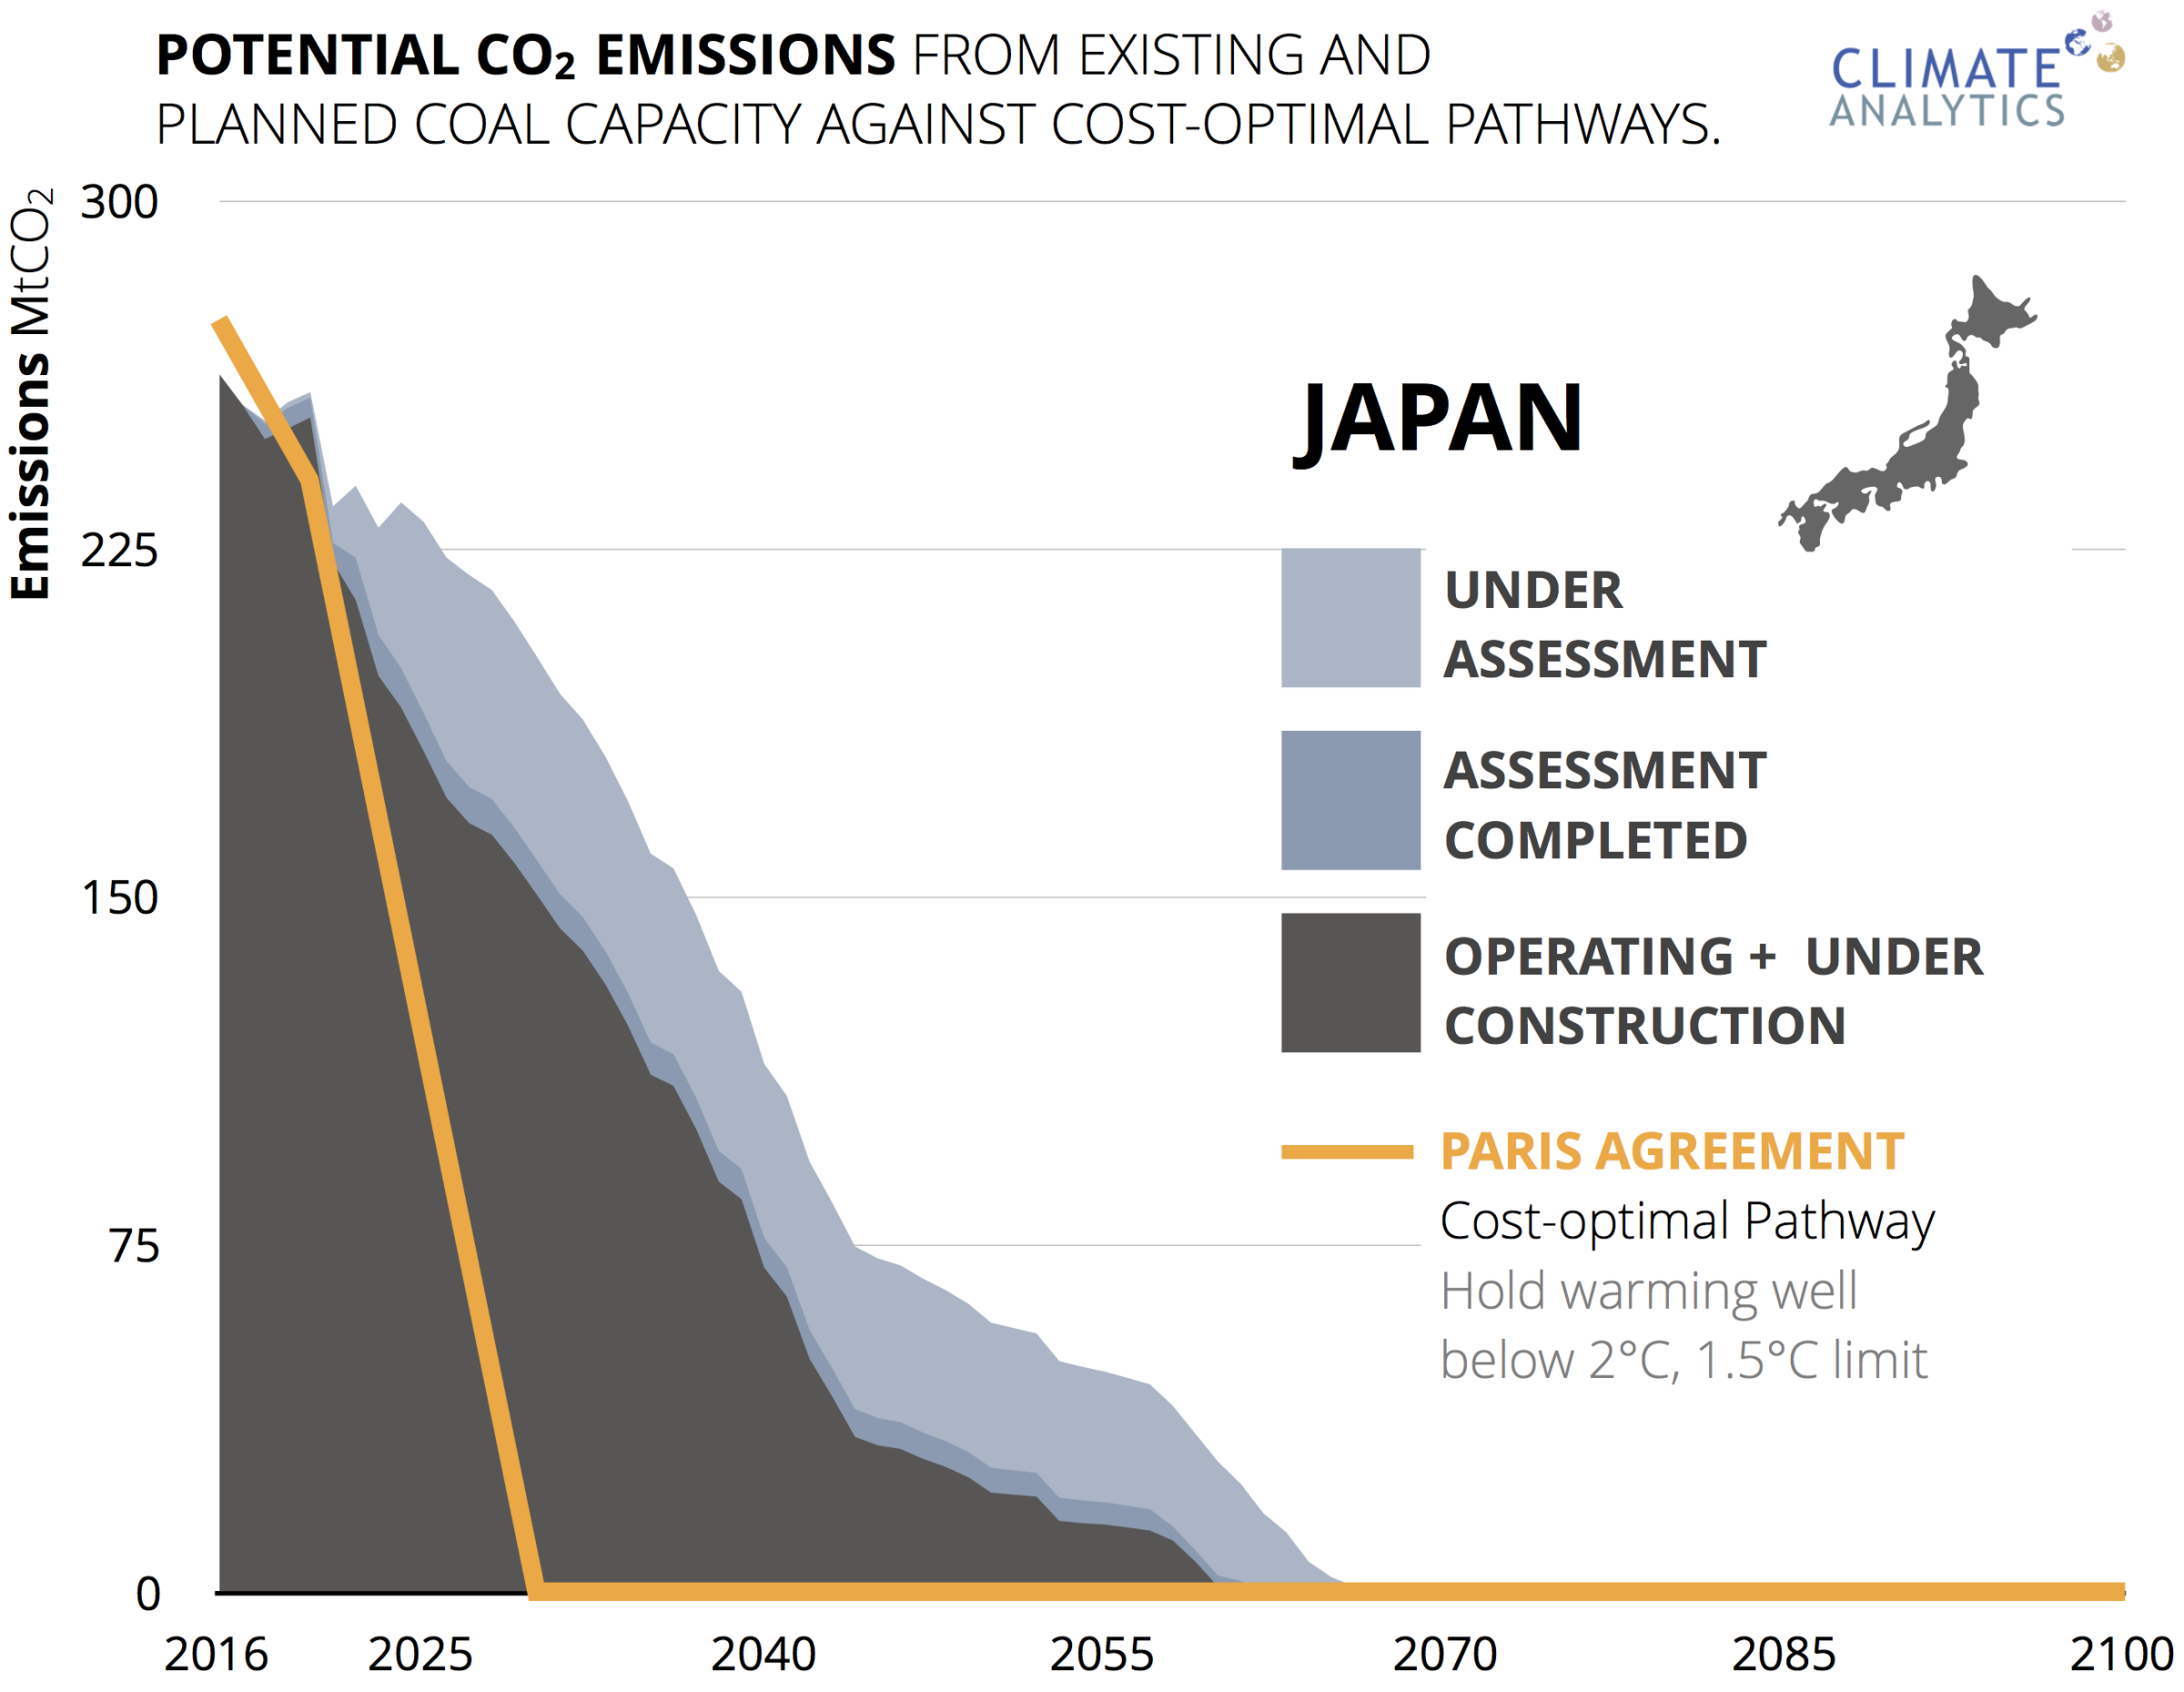 Coal Phase Out Climate Analytics Power Plant Diagram Ppt Investing In New Capacity Japan Could Leave Investors With Stranded Assets As The World Moves Away From Many Big Japanese Companies Have